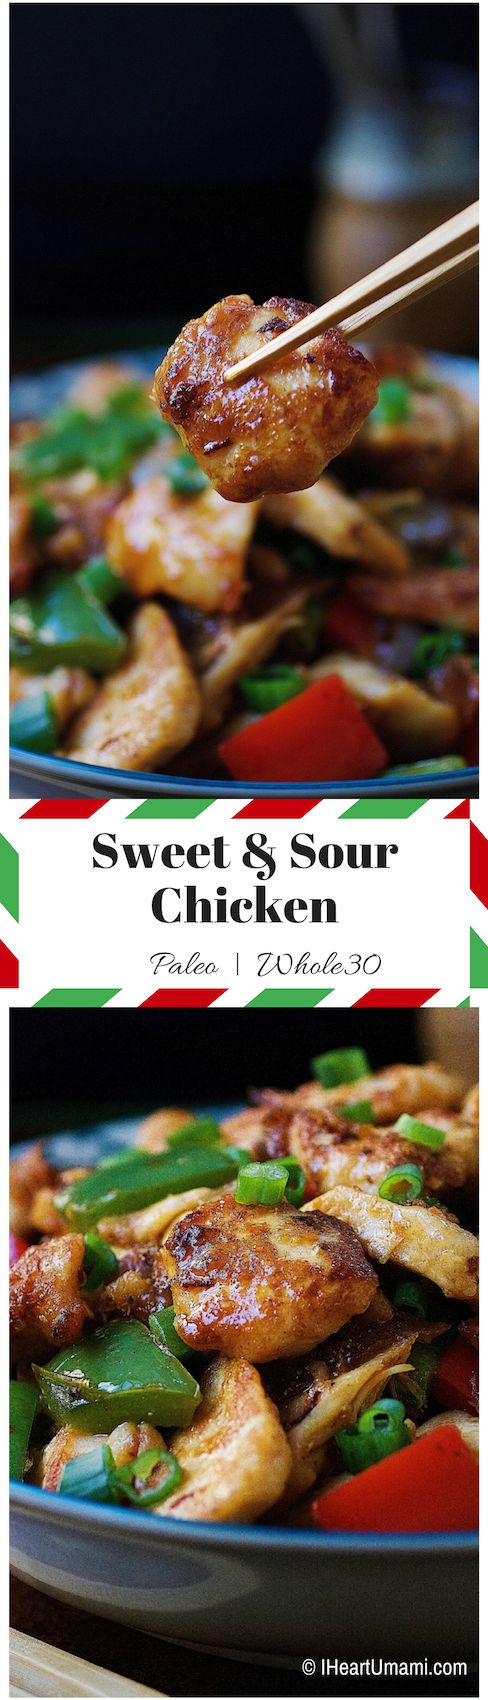 Paleo Sweet and Sour Chicken. Slightly crispy yet juicy and moist chicken stir-fry with homemade sweet and sour sauce that's sweetened with dry apricots. Perfect everyday and meal prep recipe. Paleo Chinese food. Paleo Asian food. Whole30 sweet and sour chicken. IHeartUmami.com